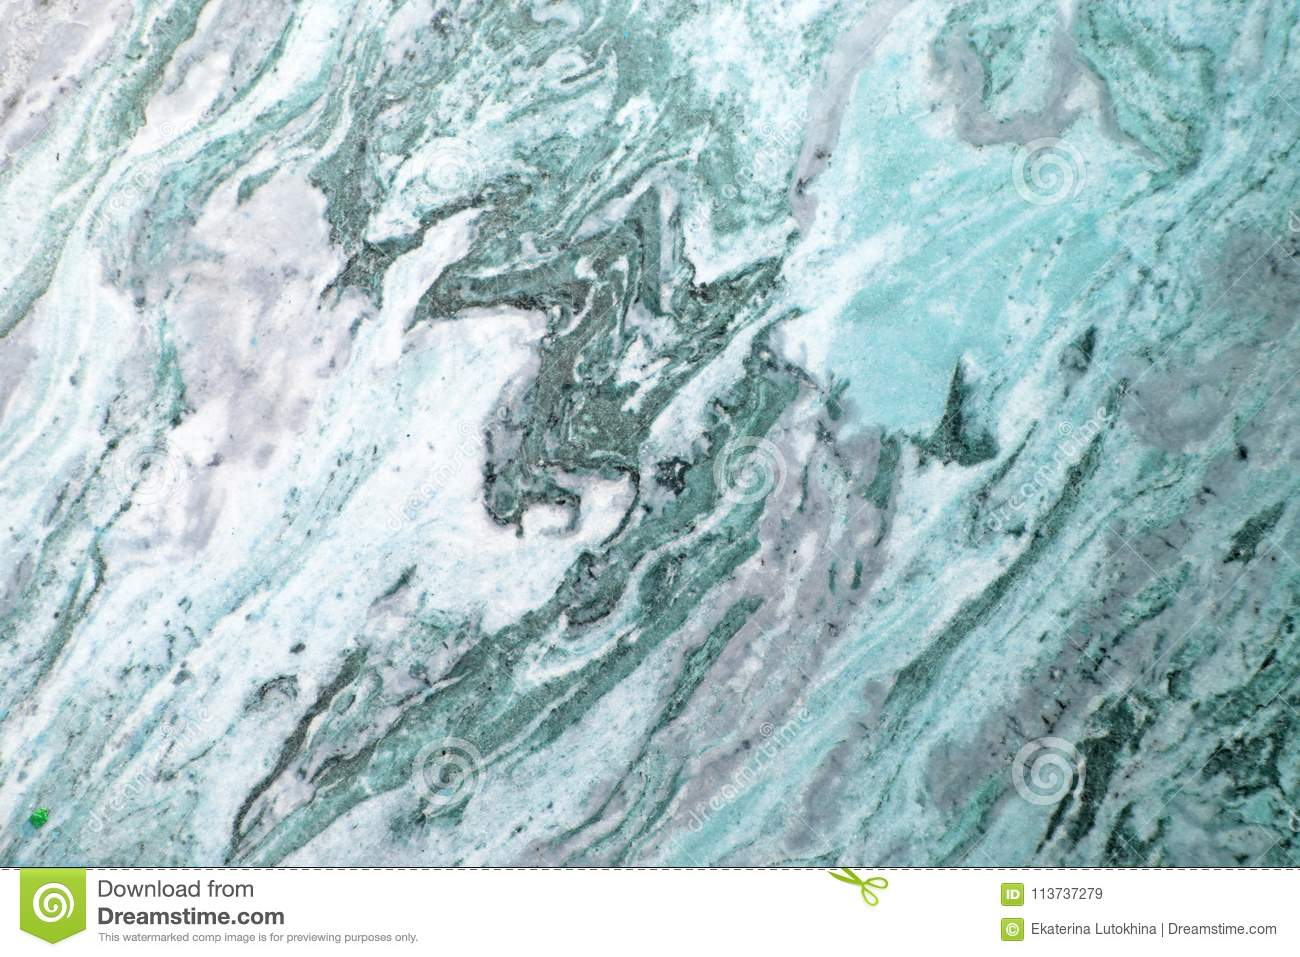 Simple Wallpaper Marble Turquoise - marble-texture-background-abstract-green-blue-turquoise-stone-wallpaper-mar-113737279  Perfect Image Reference_685216.jpg